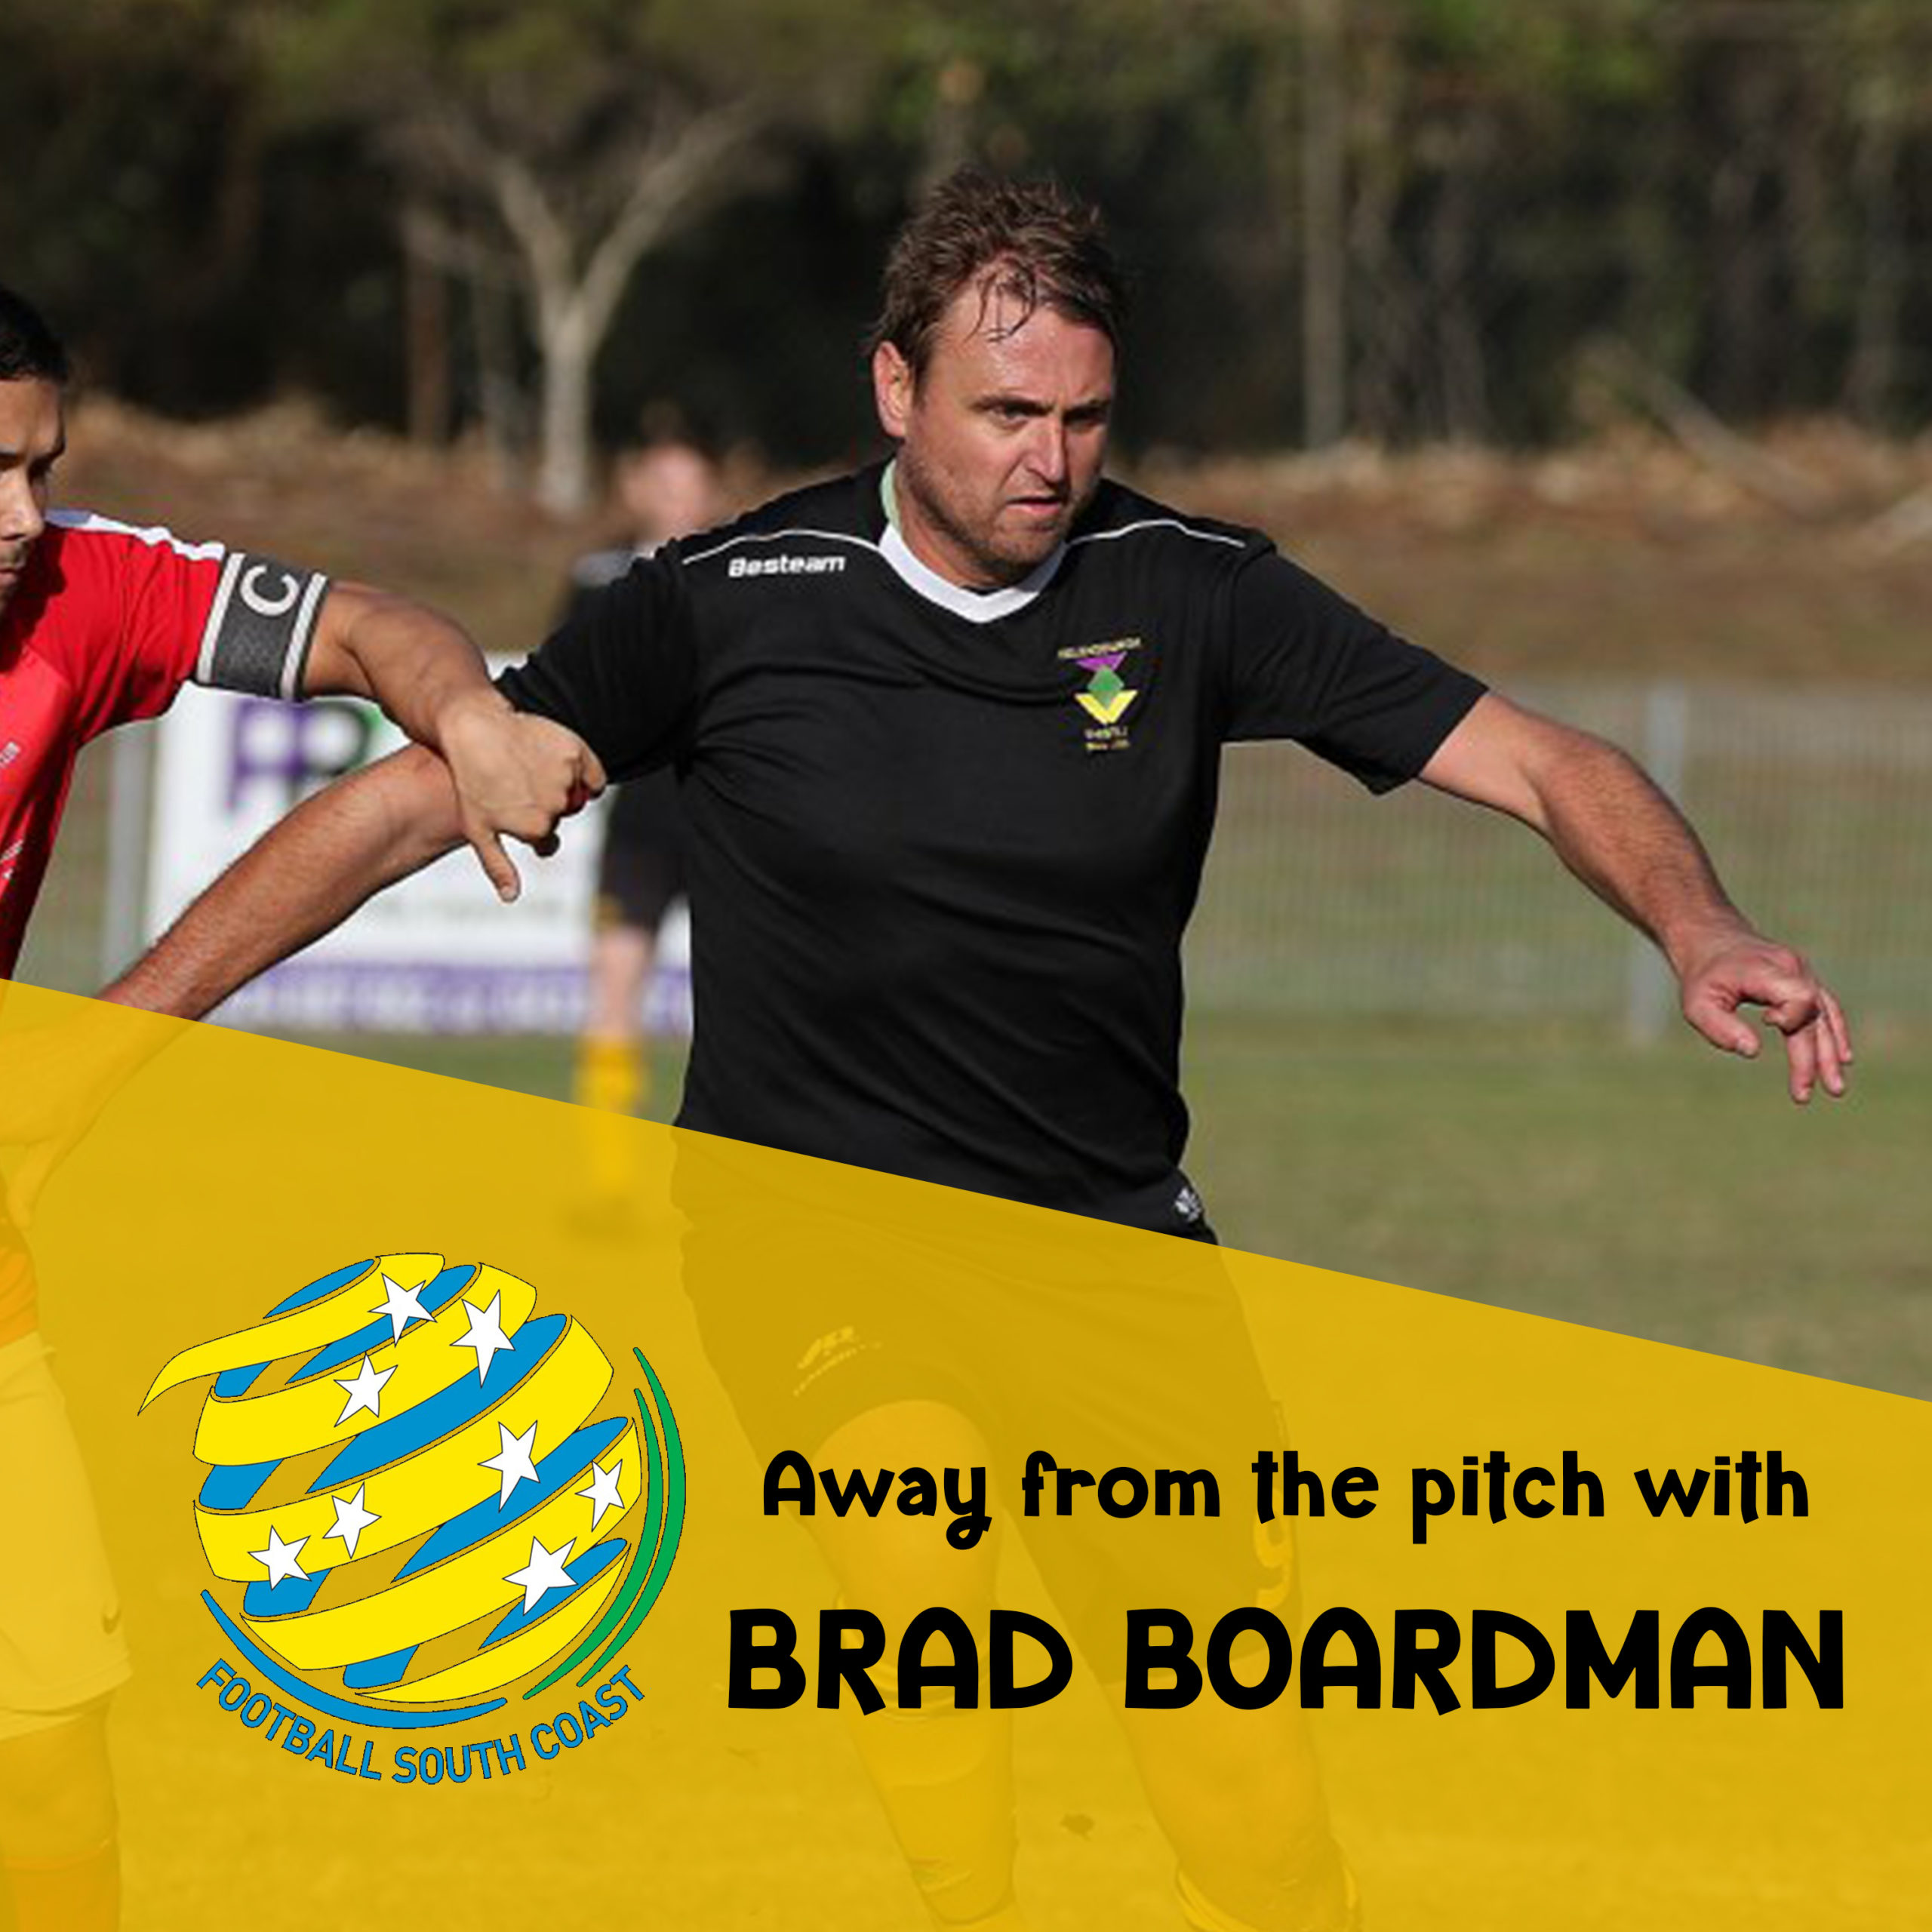 Away from the pitch with Brad Boardman artwork